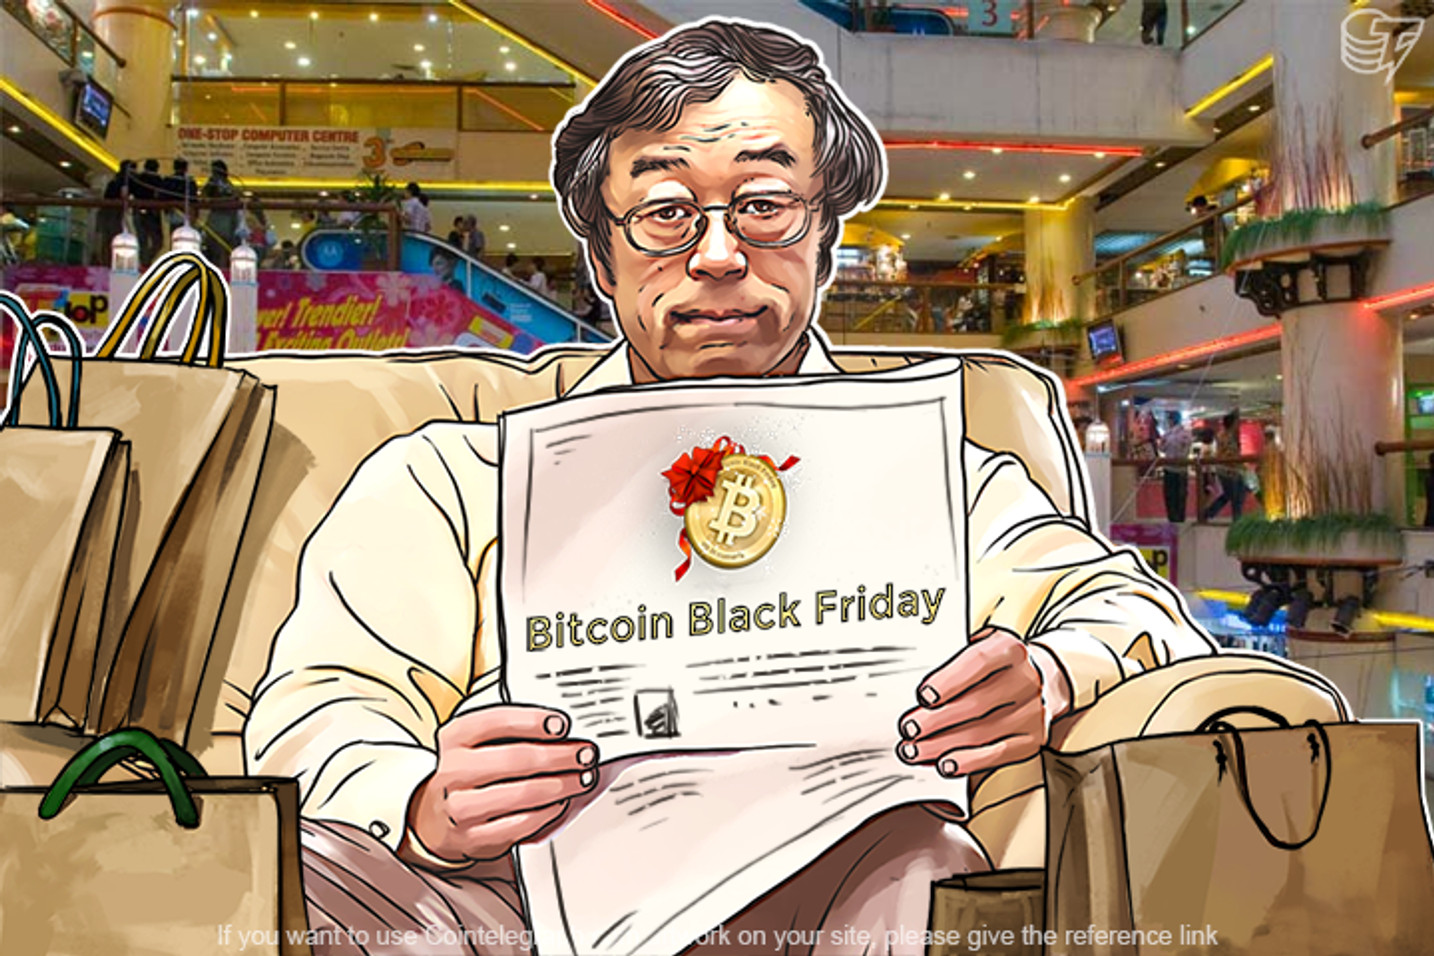 Bitcoin Black Friday Is Back!